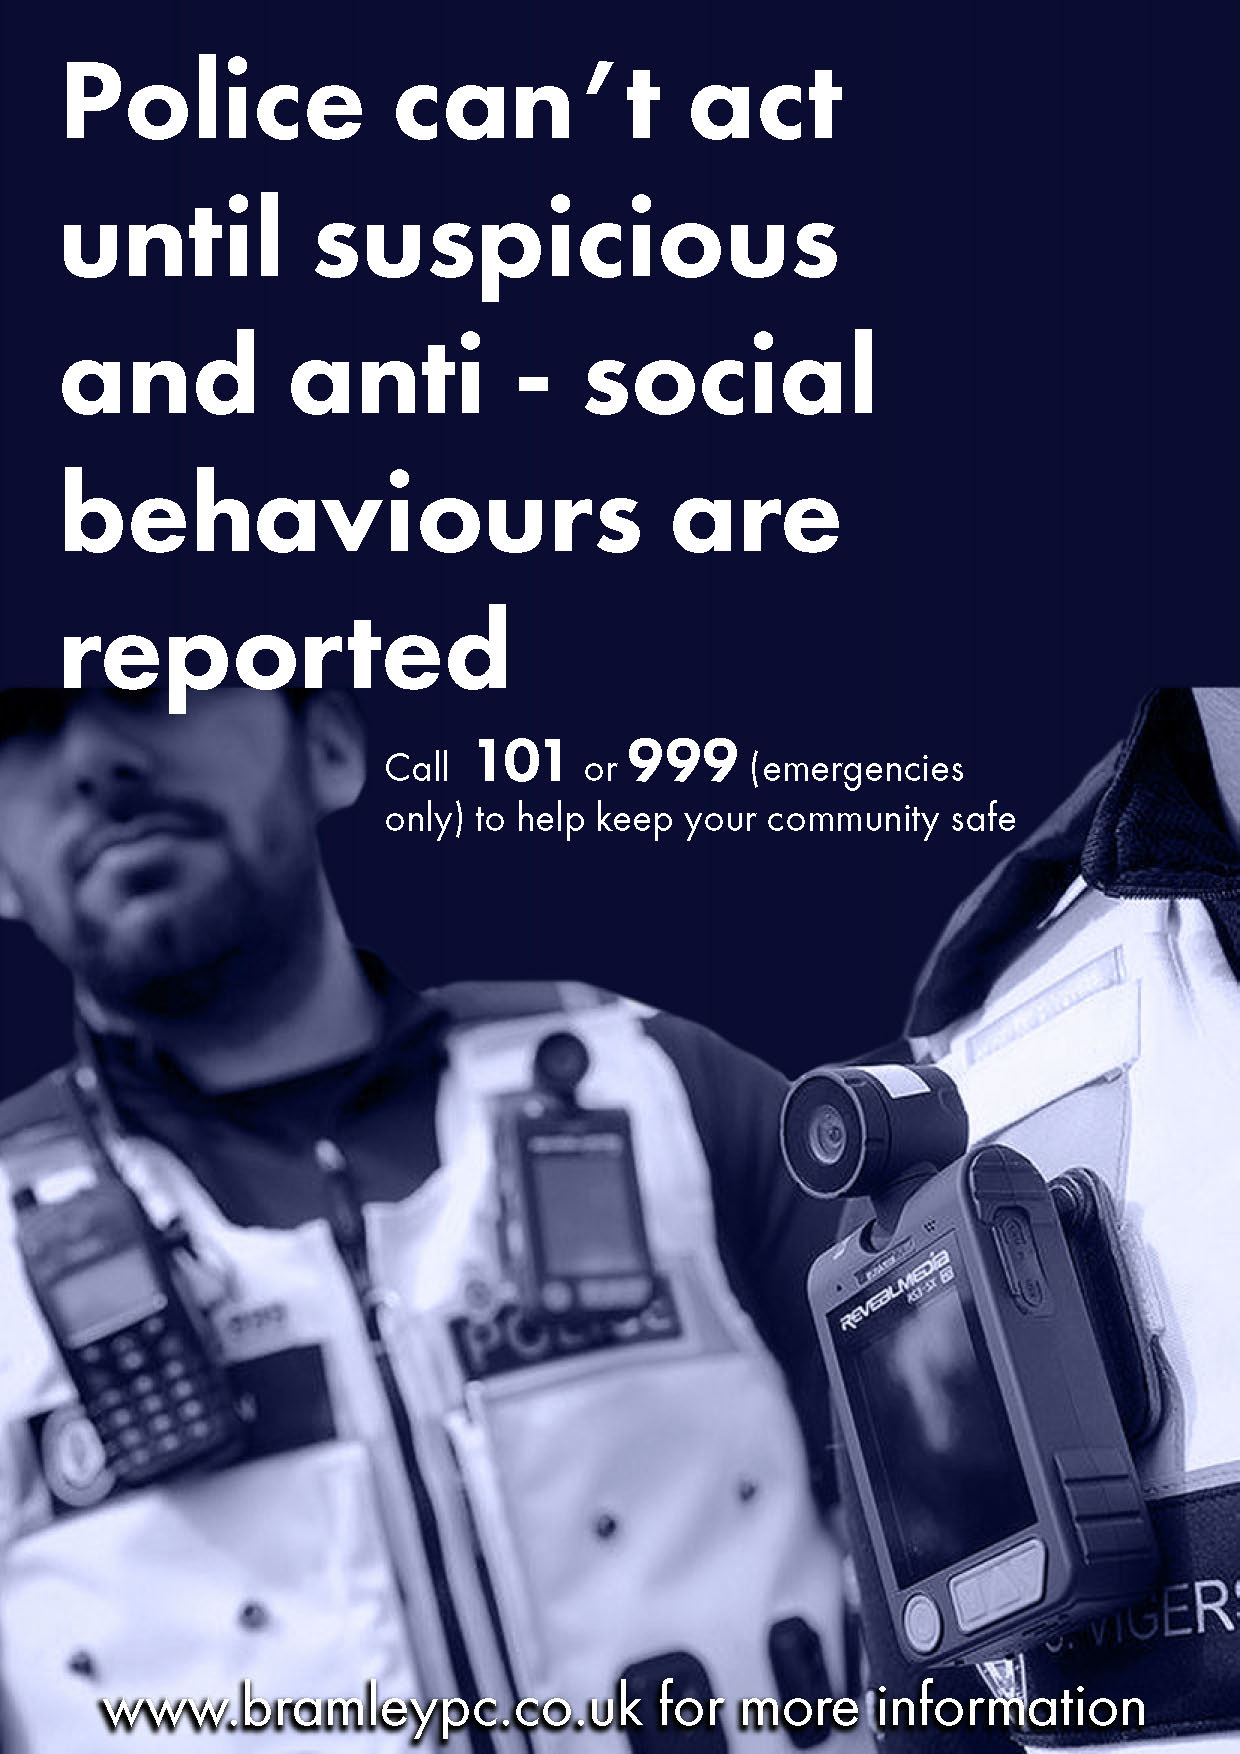 Bramley Parish Council - Report suspicious and anti-social behaviour